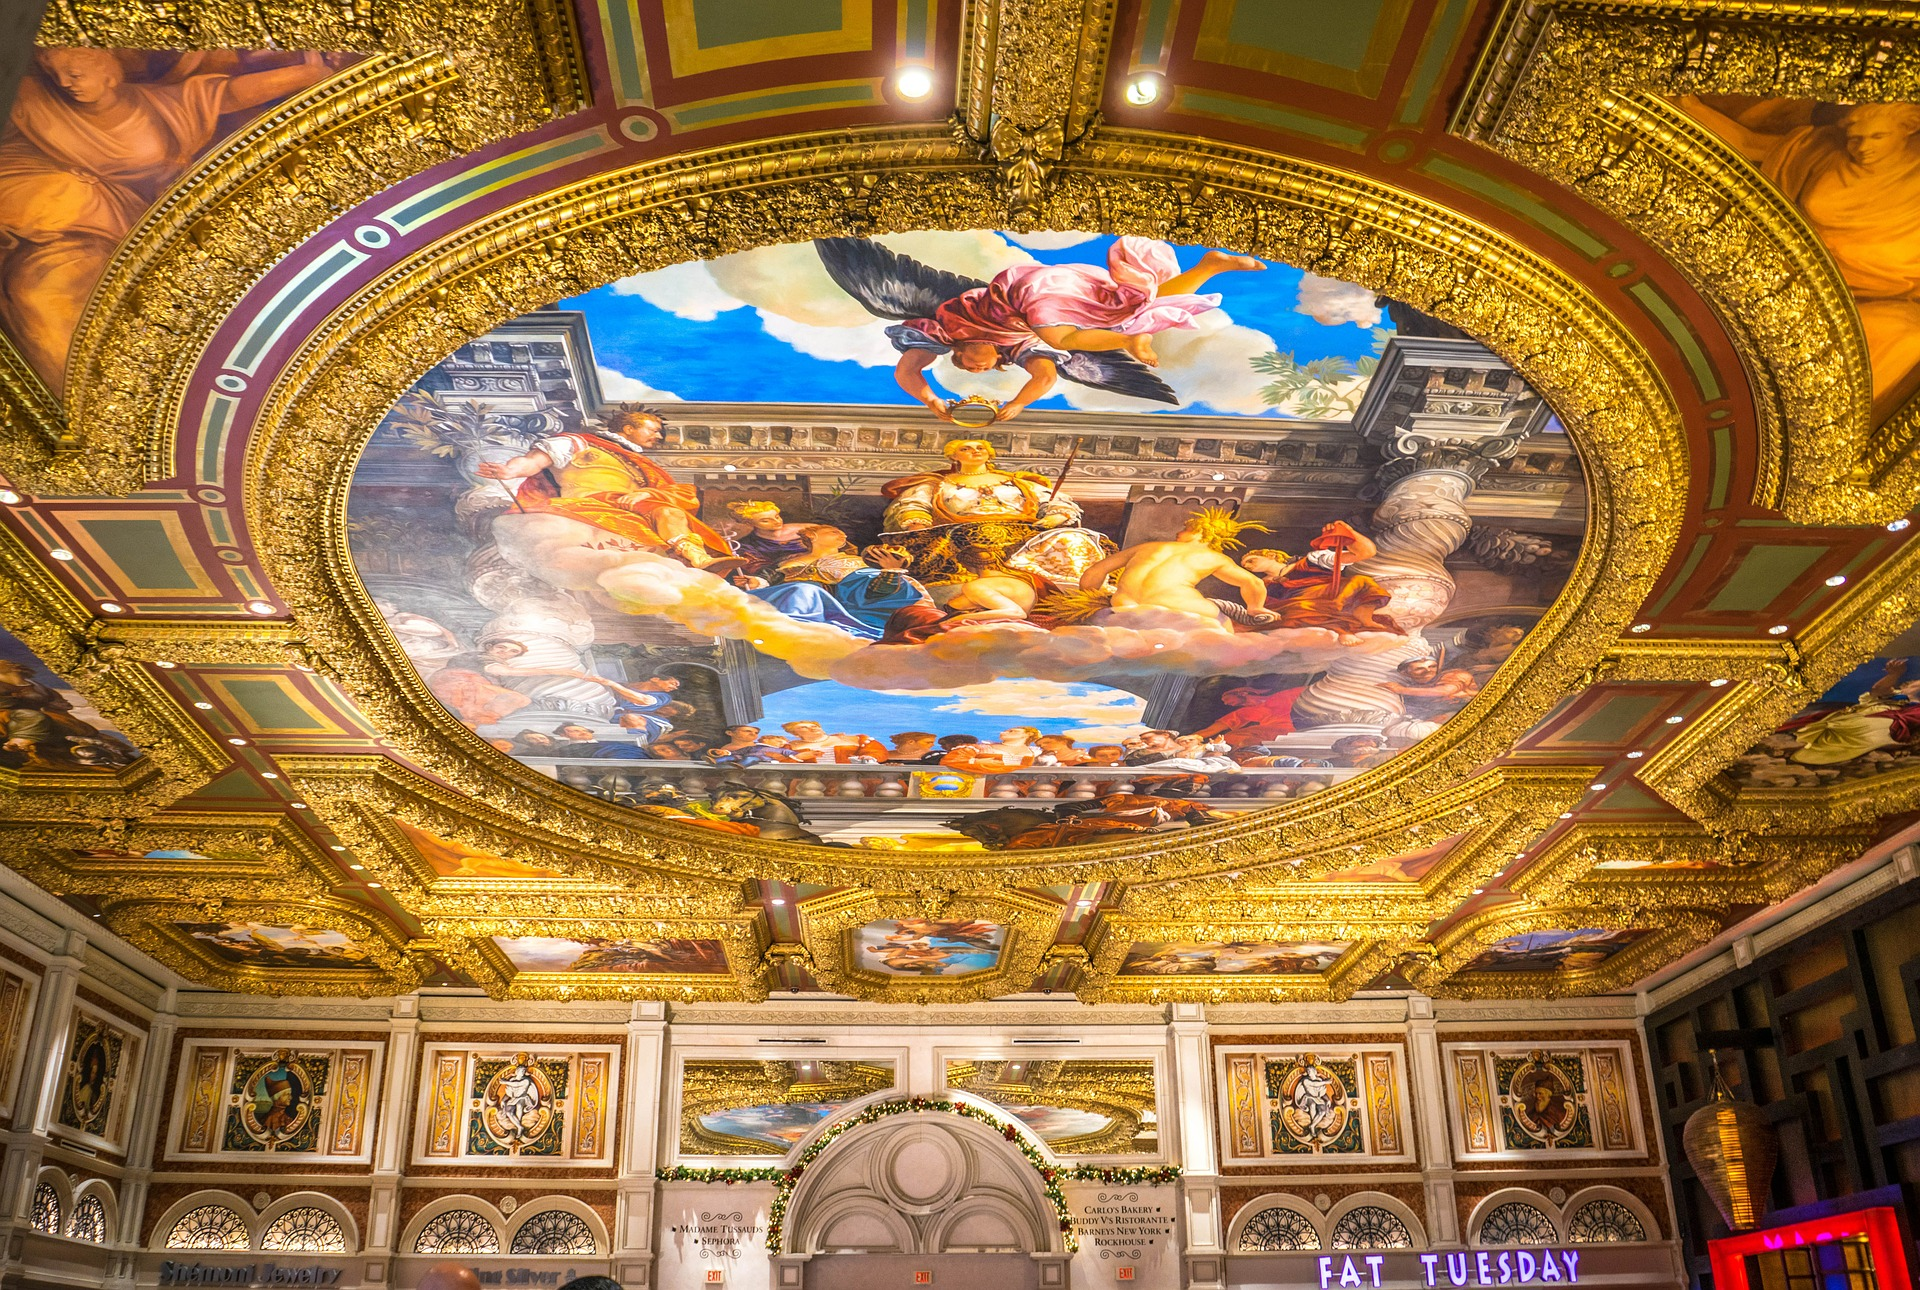 Re-creation of Michelangelo's painted ceiling at The Venetian, Las Vegas